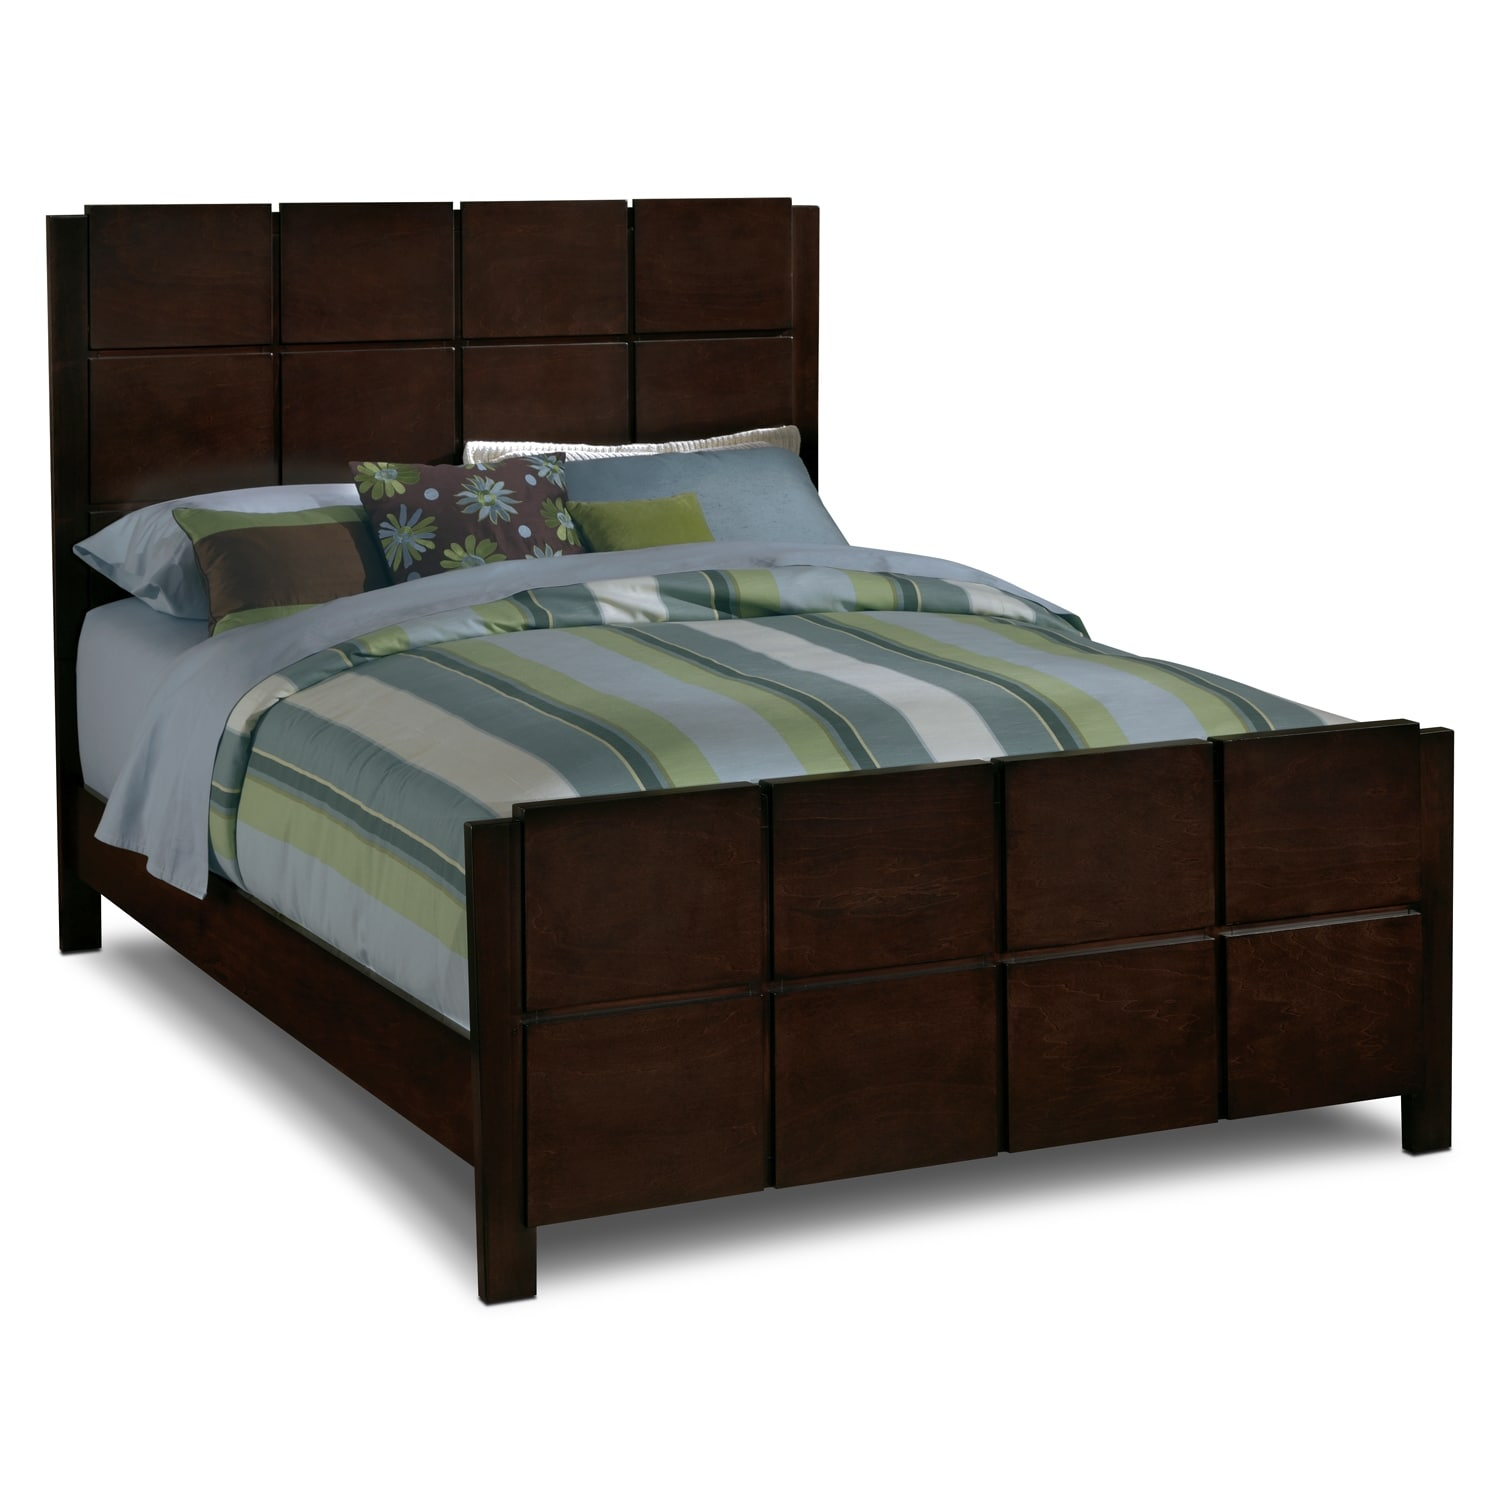 Mosaic king bed dark brown american signature furniture for Signature furniture